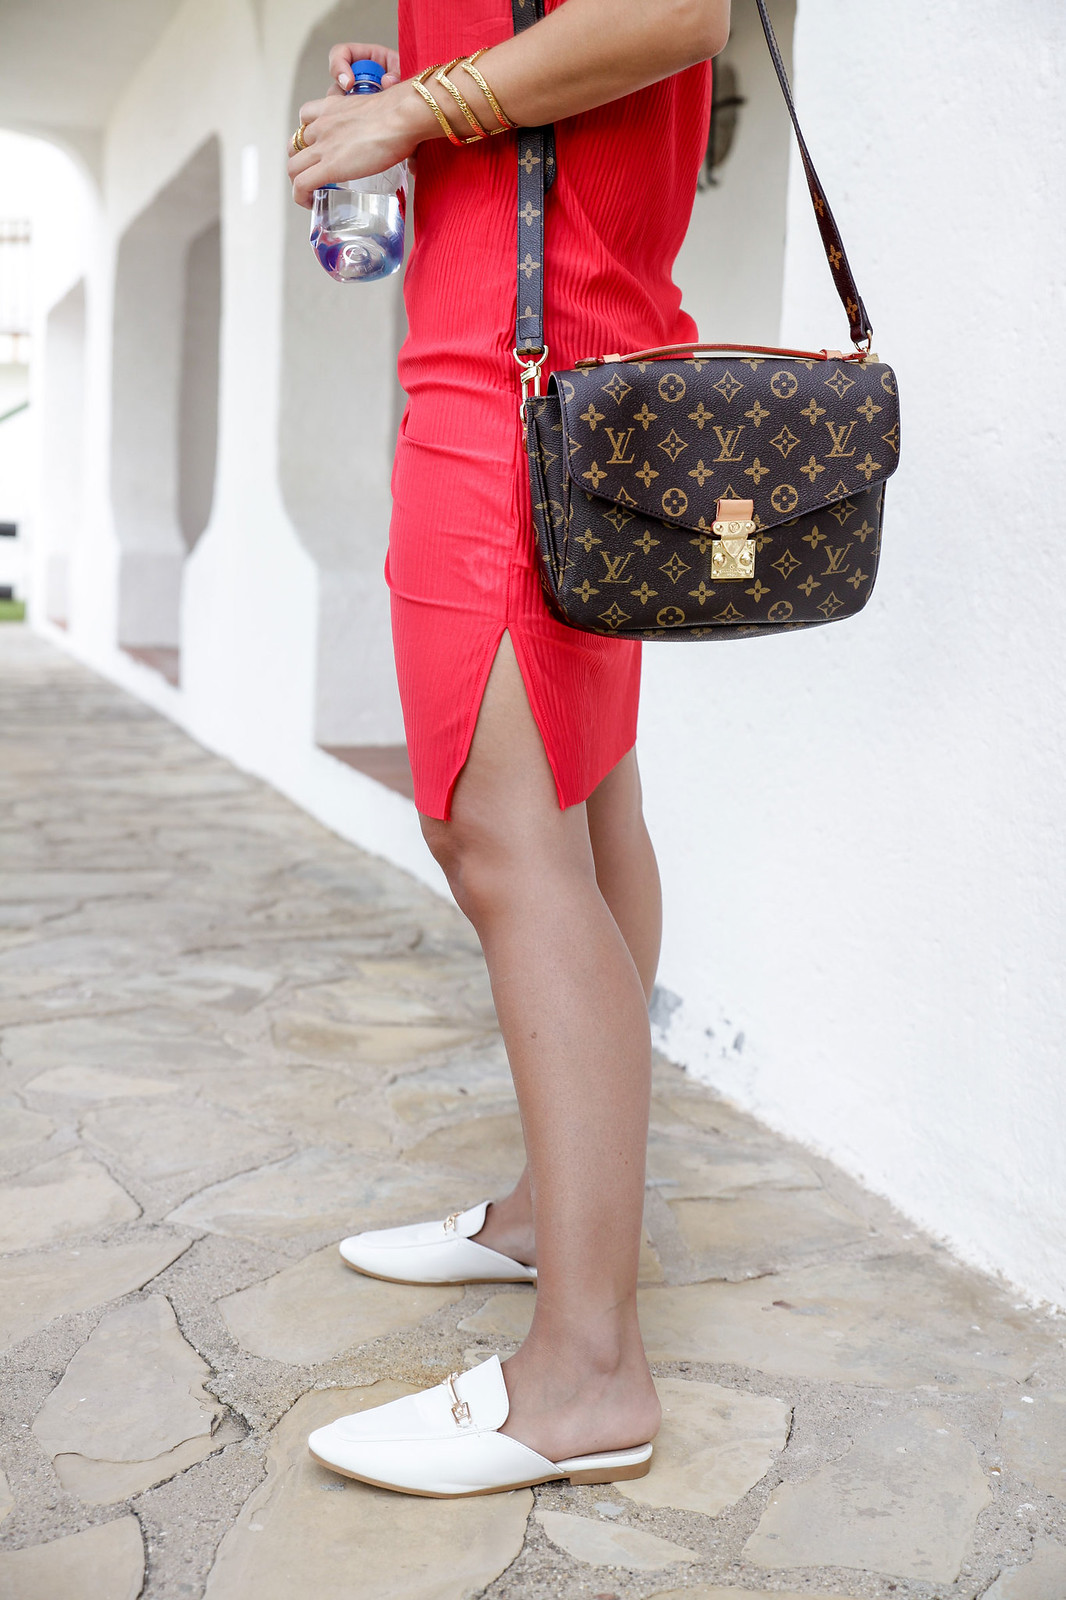 013_red_dress_nakd_code_promocional_off_blogger_theguestgirl_lady_in_red_glam_style_barcelona_vestido_rojo_perfecto